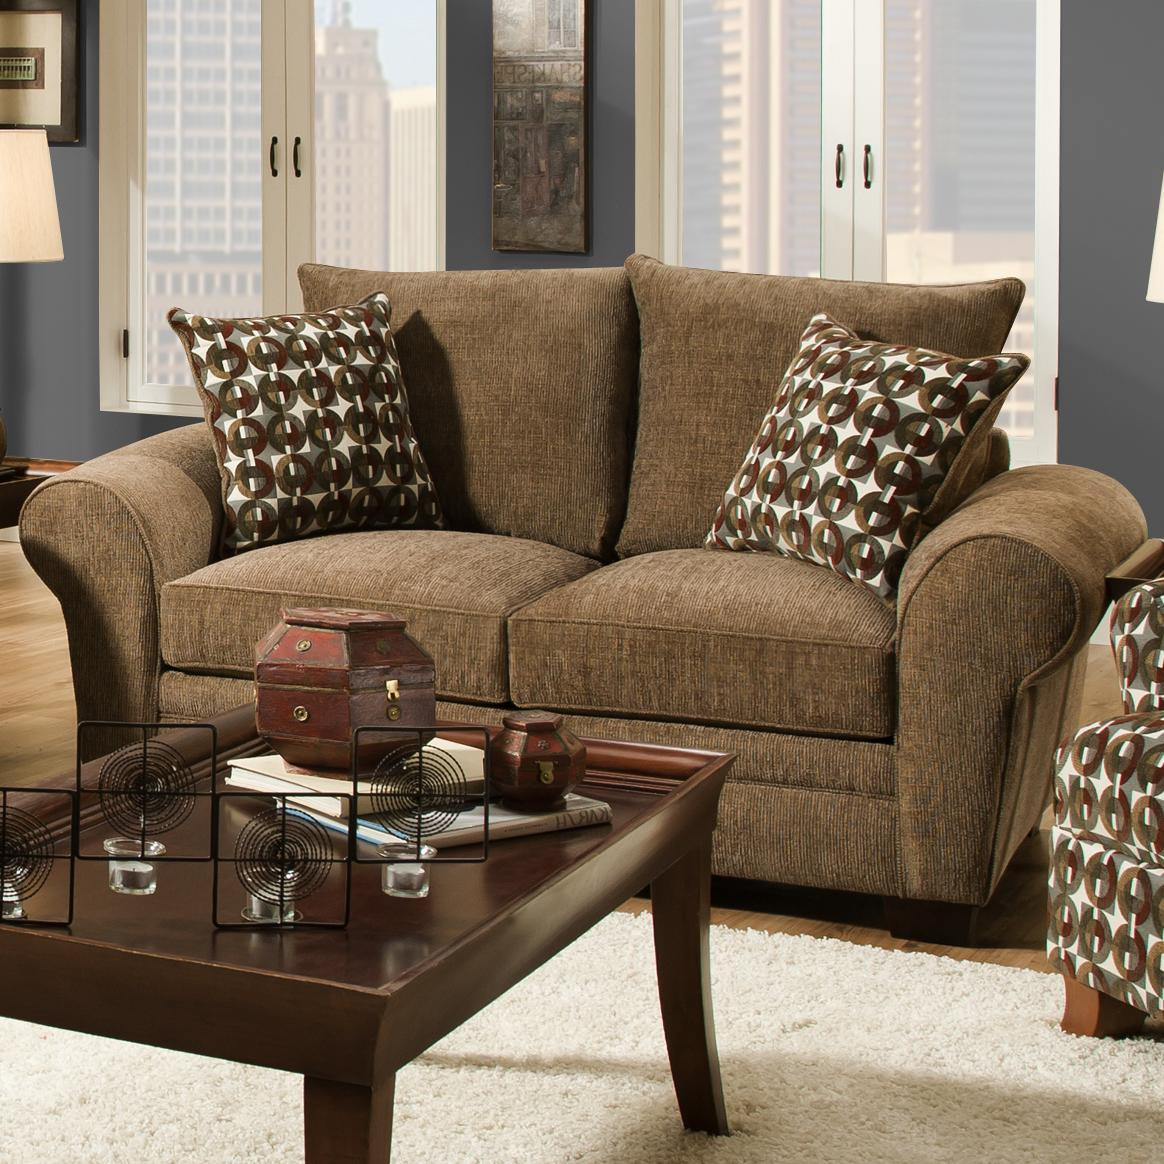 Traditional Styled Loveseat With Comfortable Look For Casual Family Living By Corinthian Wolf